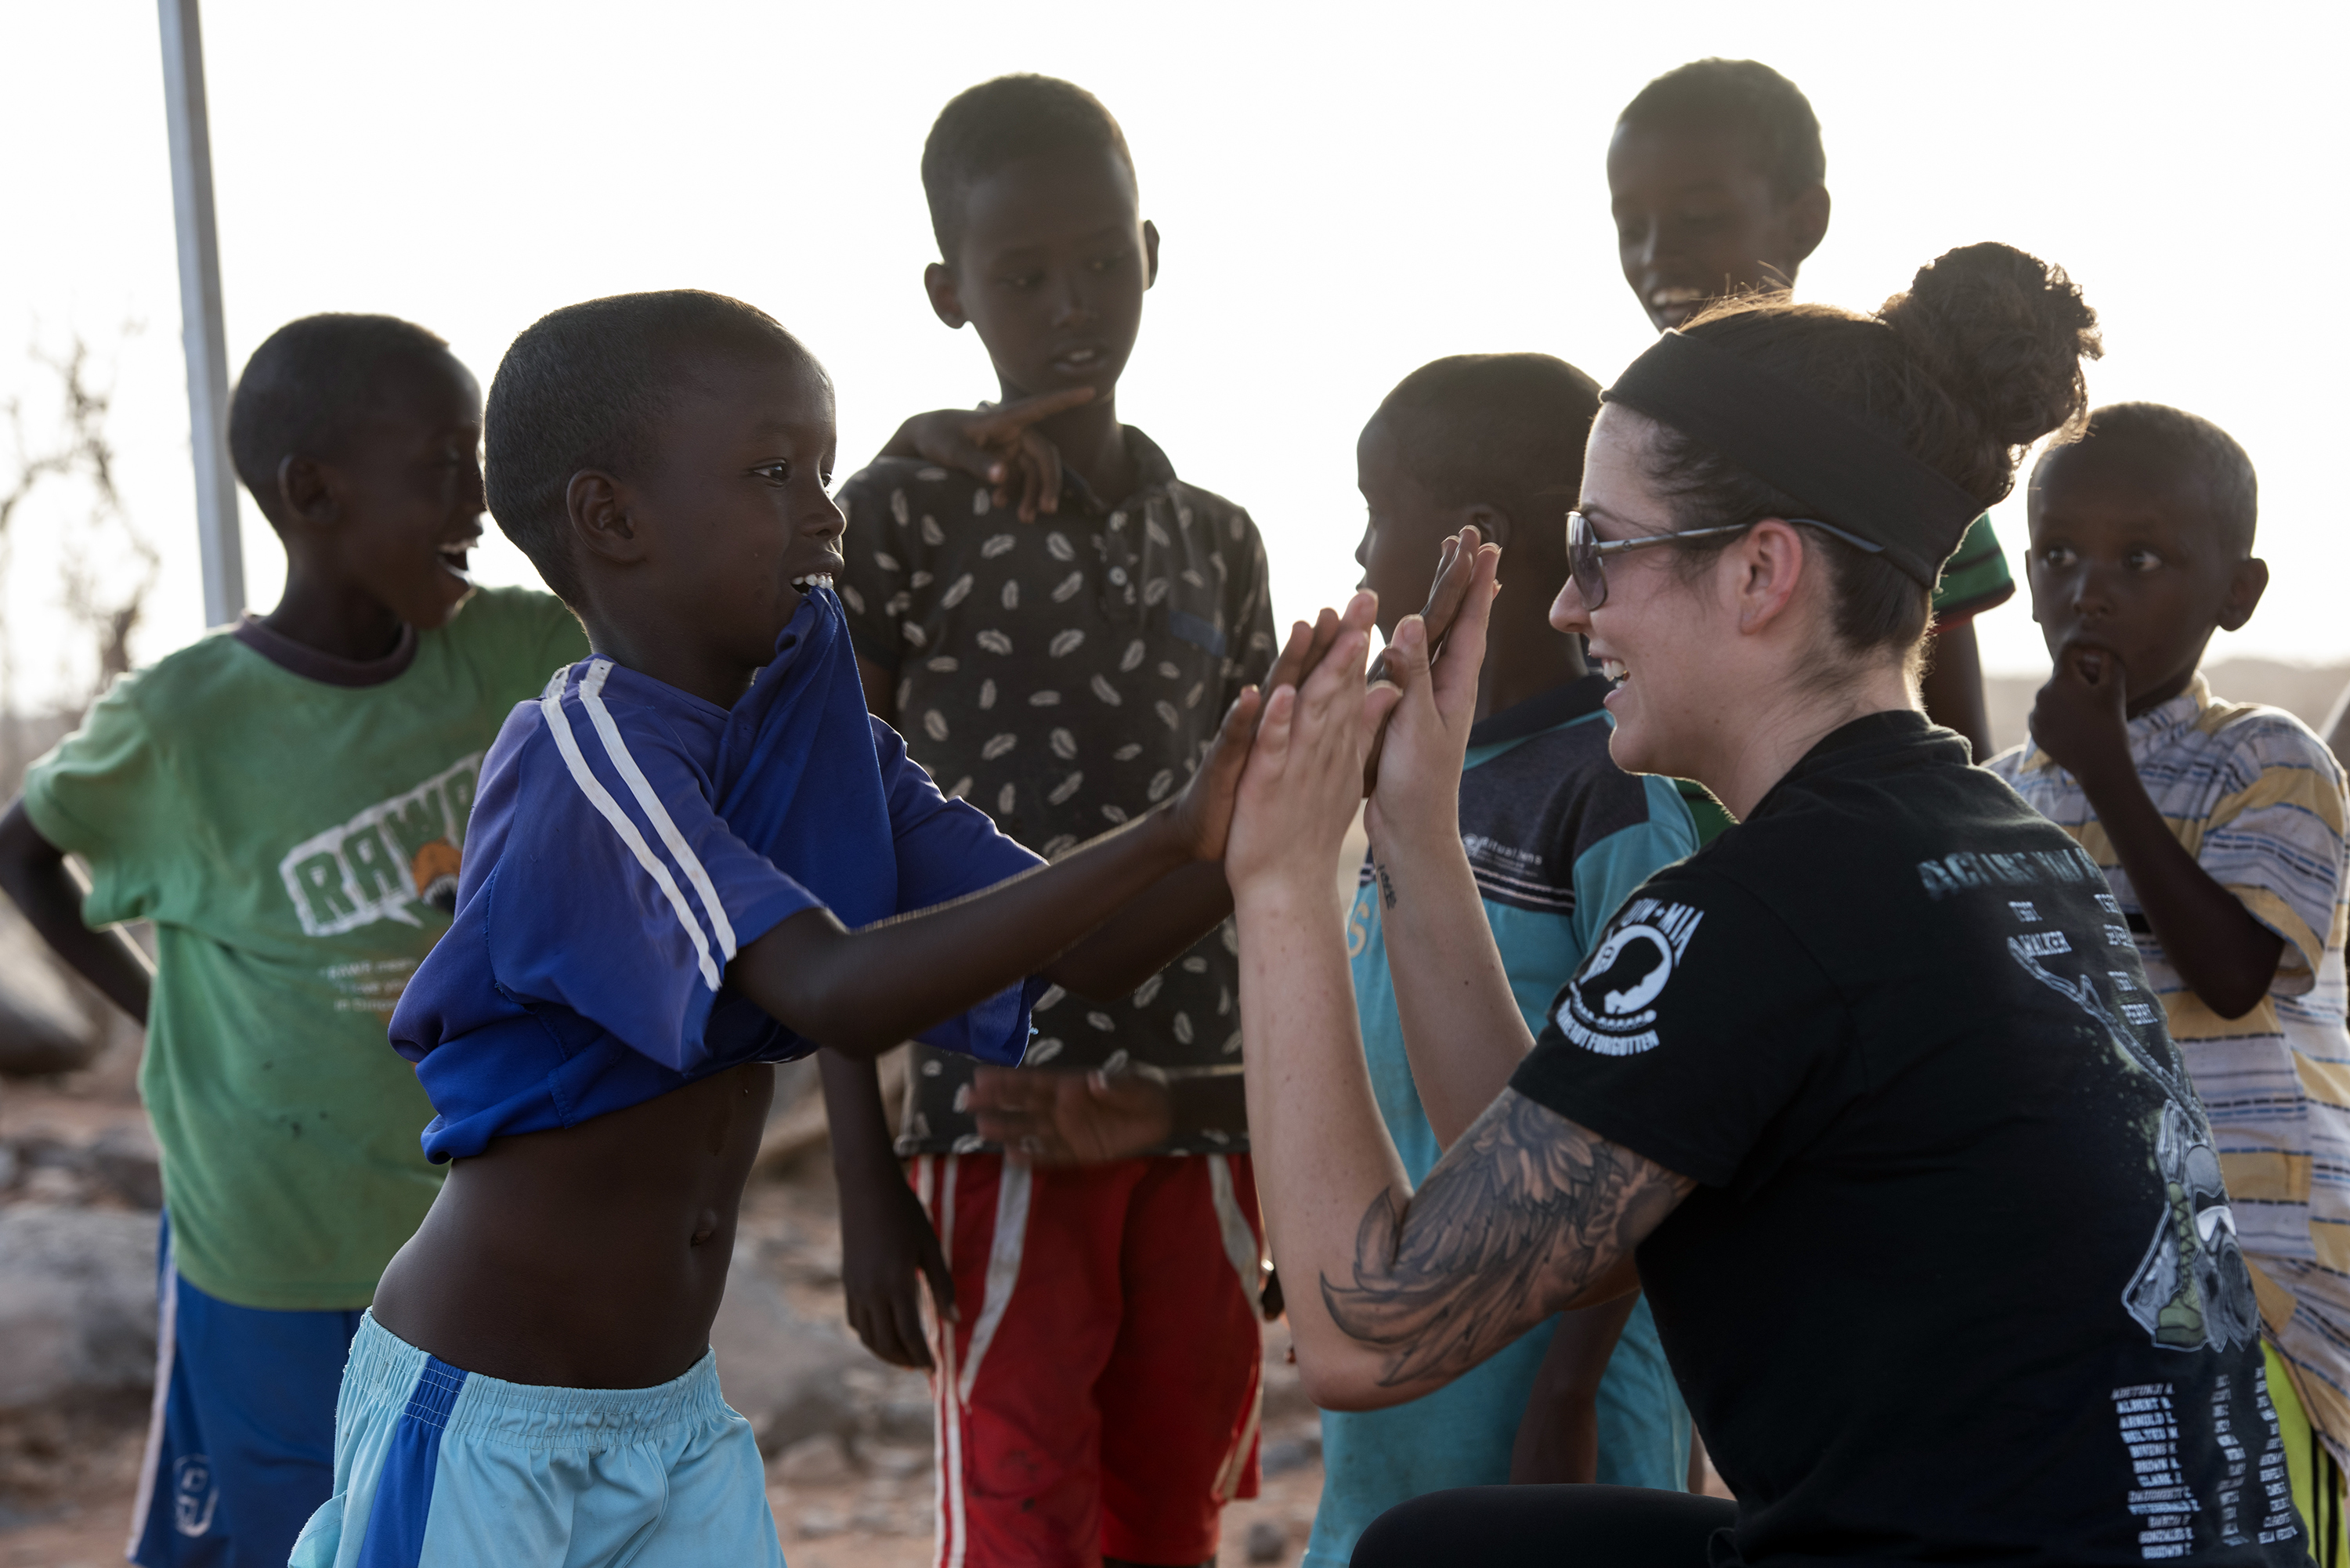 U.S. Air Force Airman 1st Class Taylor Simmons, Services Journeyman, 870th Air Expeditionary Squadron, Combined Joint Task Force - Horn of Africa (CJTF-HOA), interacts with children outside of Chebelley Village, Djibouti, Aug. 3, 2018. Simmons was participating in an outreach event organized by the 404th Civil Affairs Battalion that included 30 service members from CJTF-HOA. (U.S. Air National Guard photo by Master Sgt. Sarah Mattison)